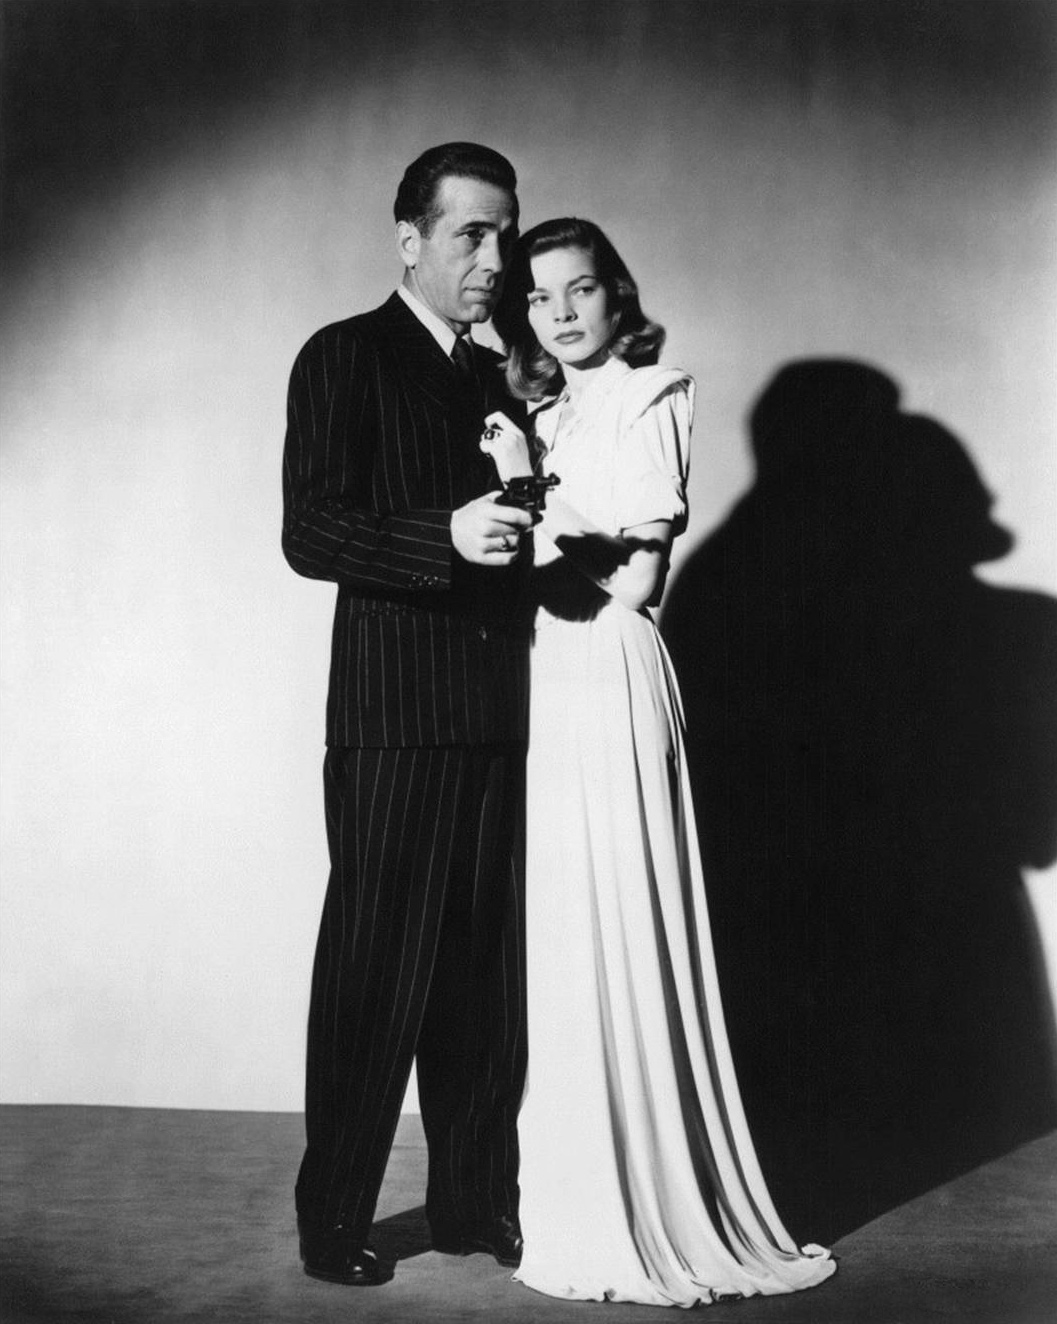 New Releases: Humphrey Bogart and Lauren Bacall on Blu-ray